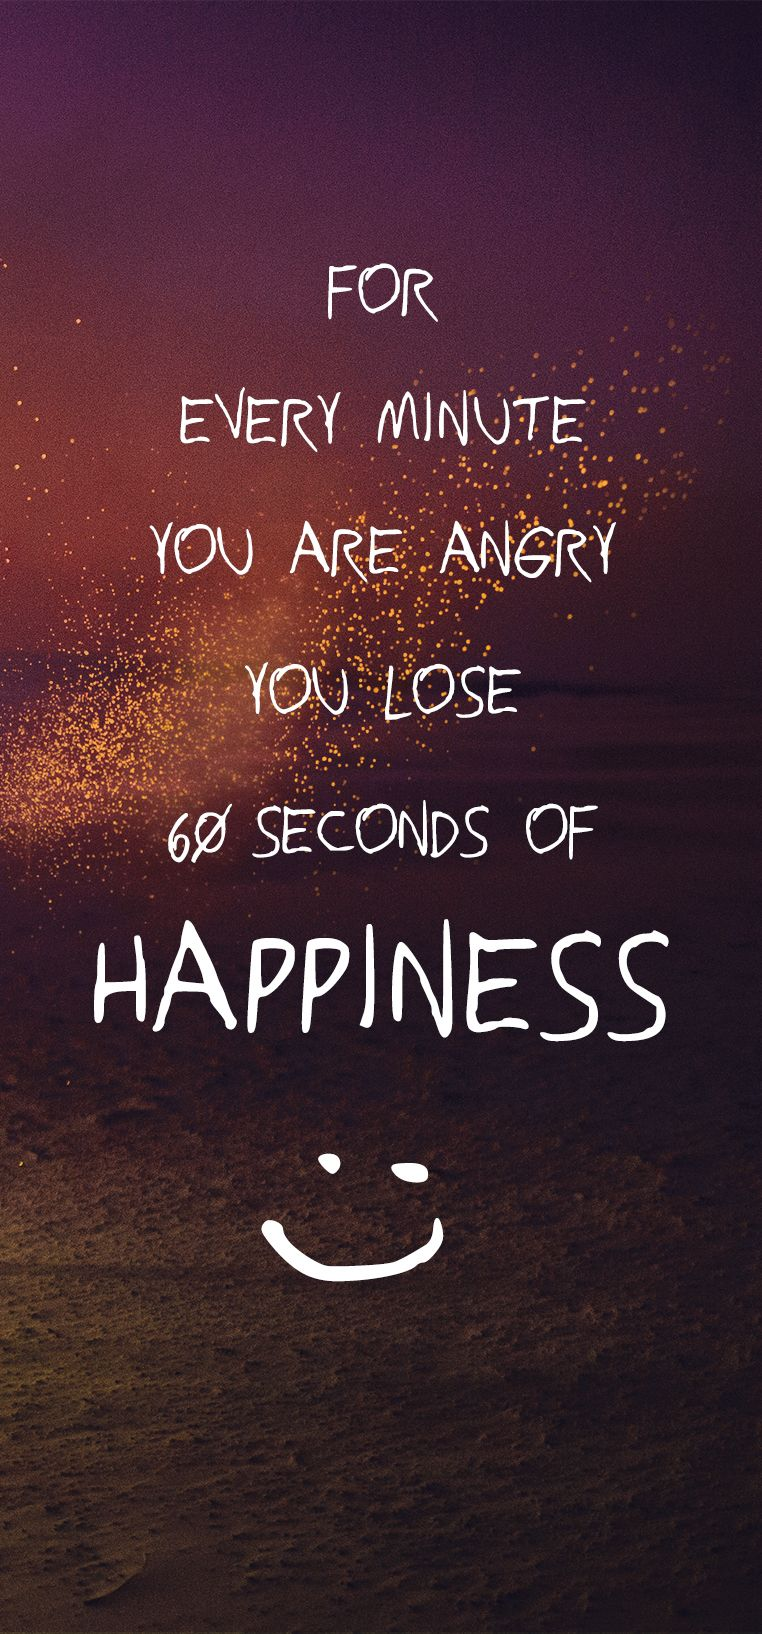 inspired quotes images - 736×1578